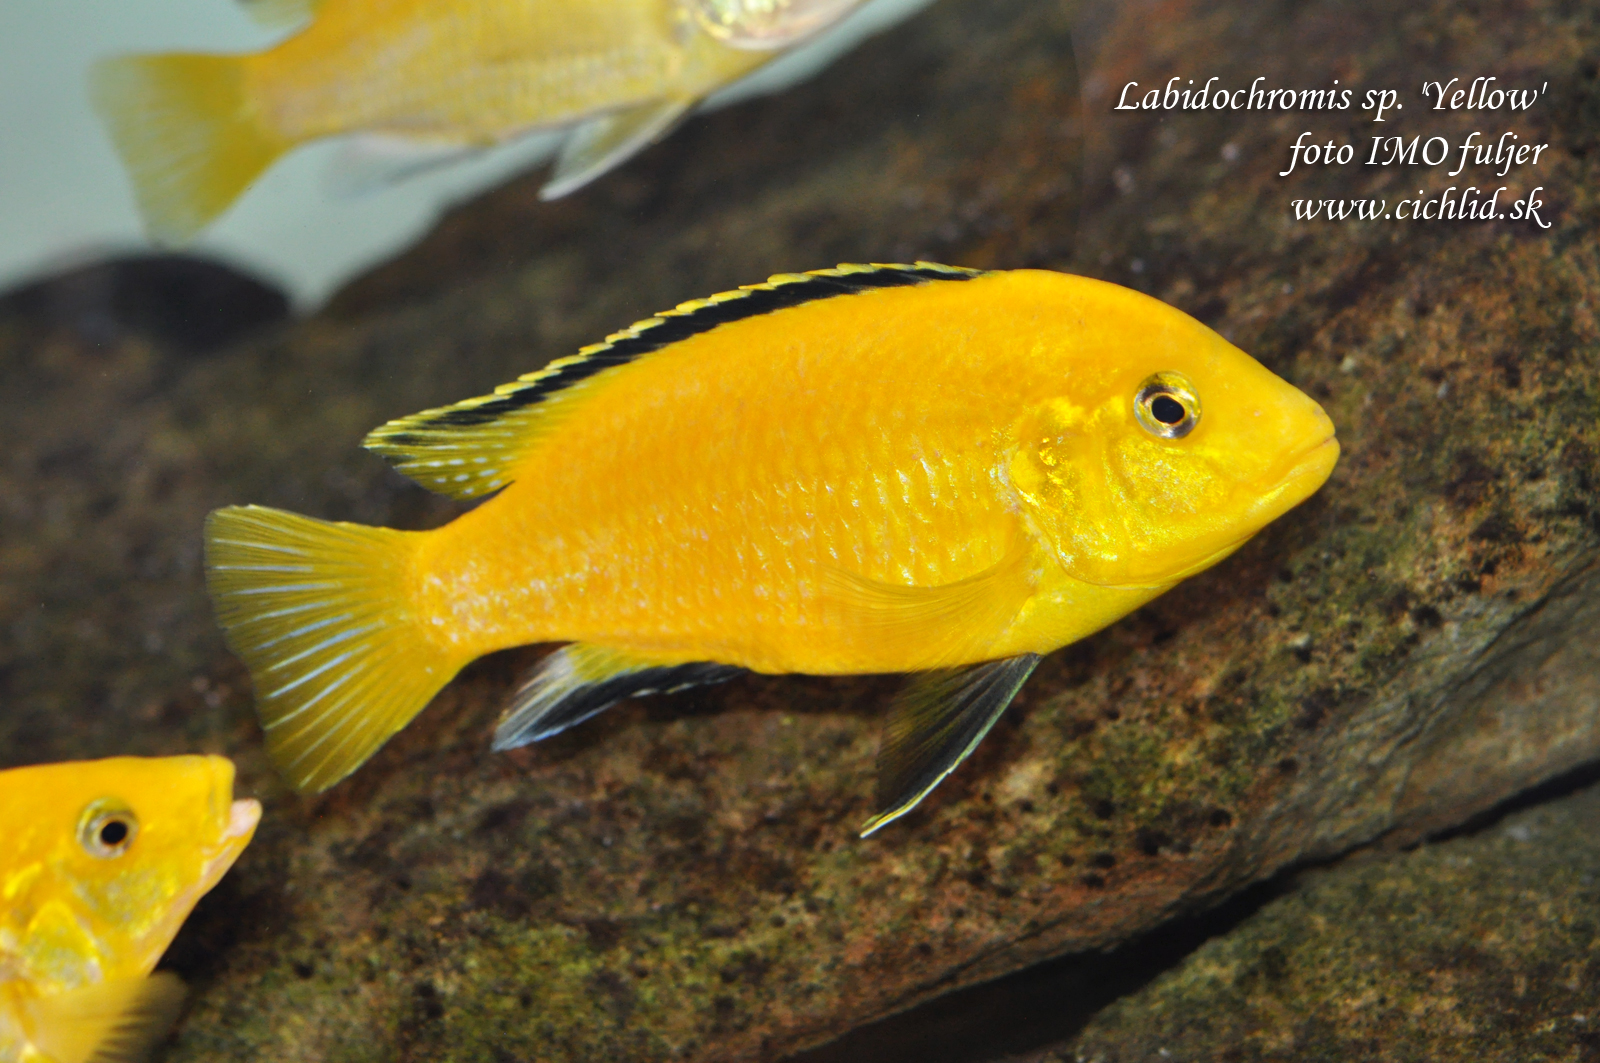 Labidochromis sp. 'Yellow'